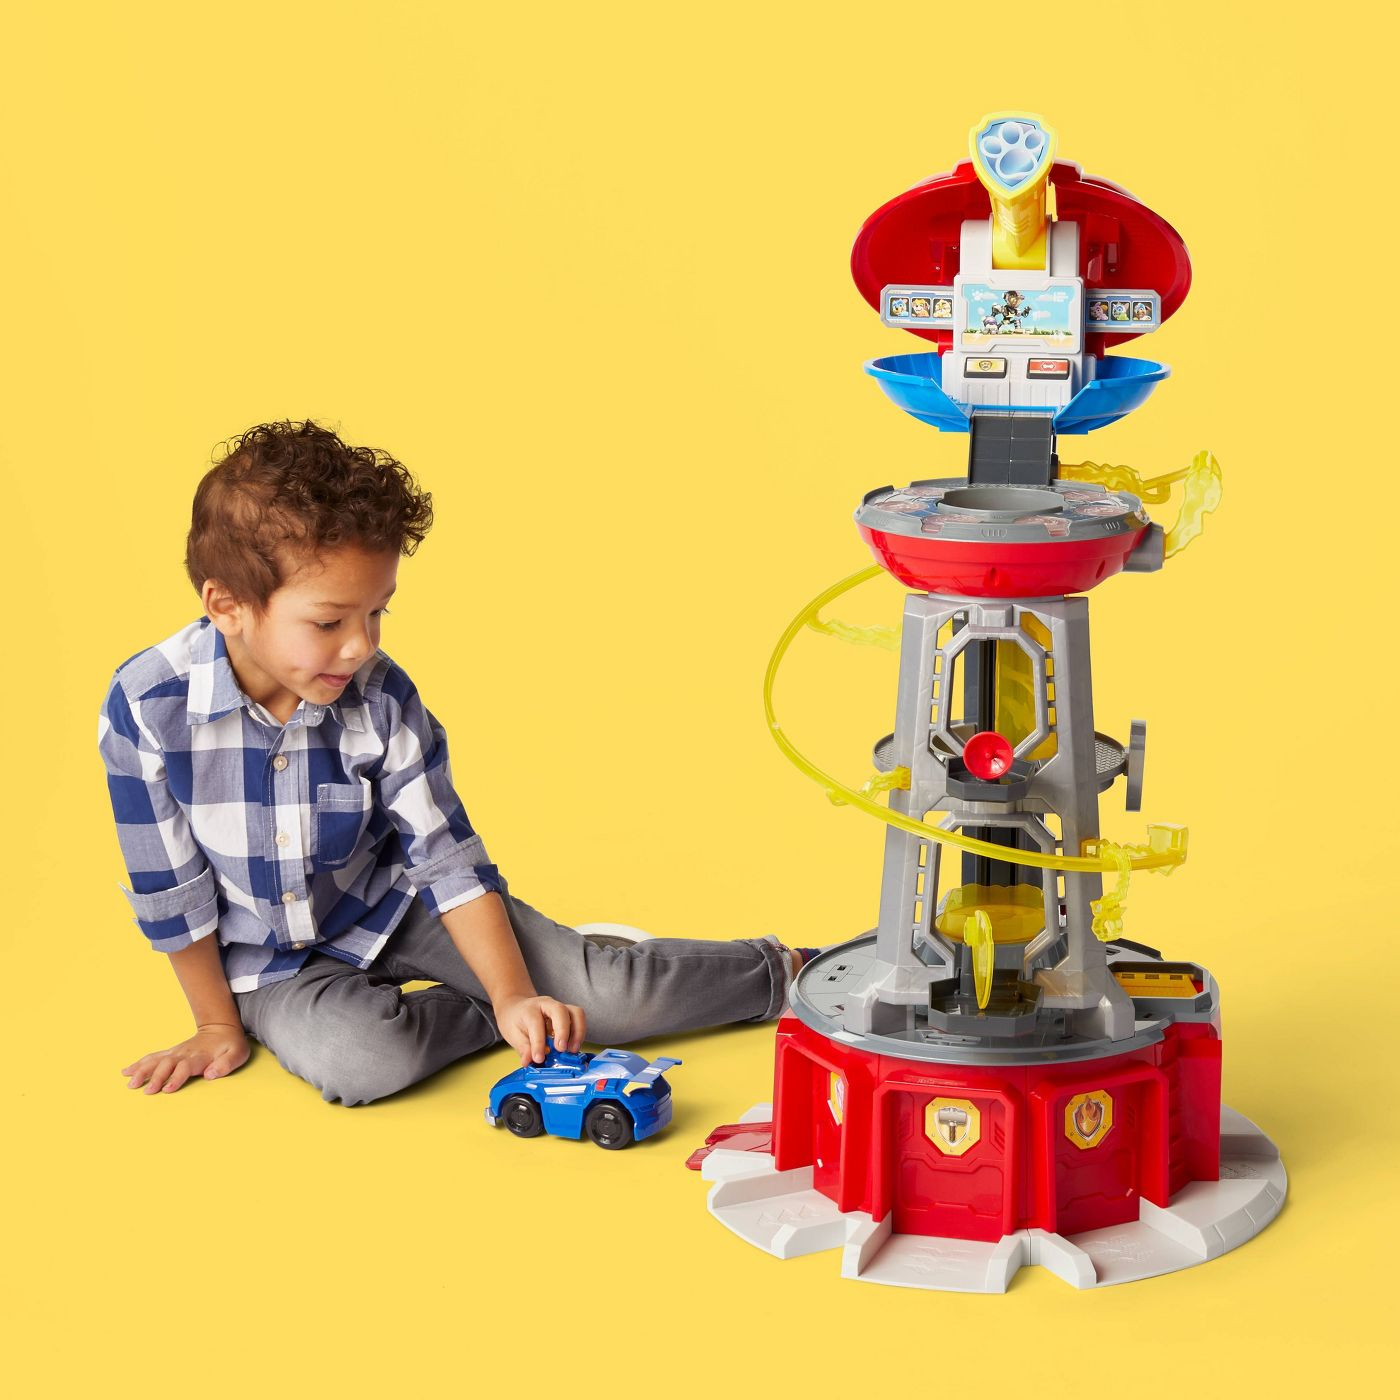 PAW Patrol Super Mighty Pups  Lookout Tower with Chase Figure - image 2 of 10